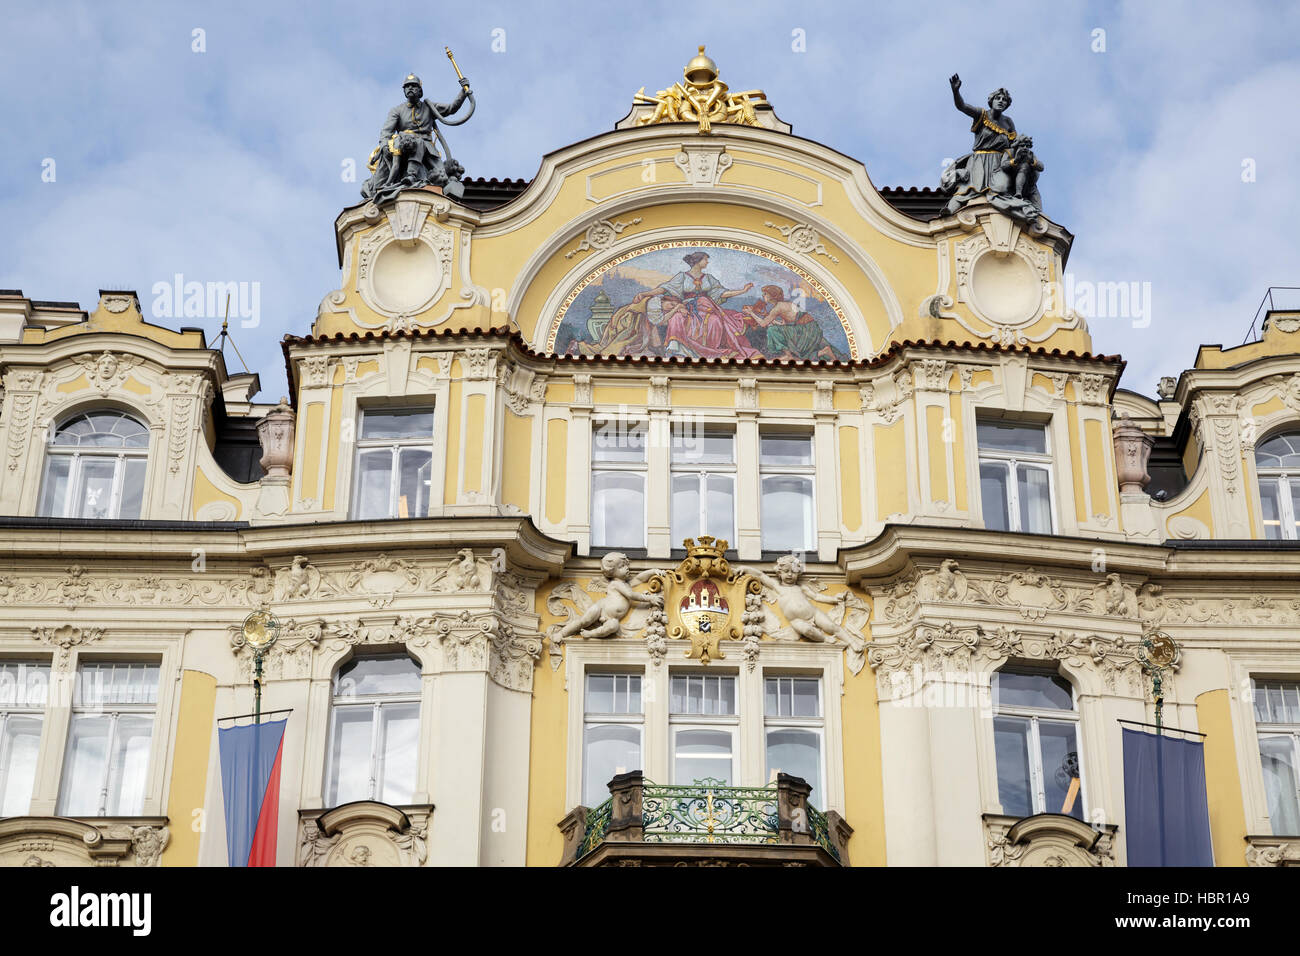 Ministry of Local Development building on the Old Town Square – Art Nouveau building designed by Architect Osvald - Stock Image